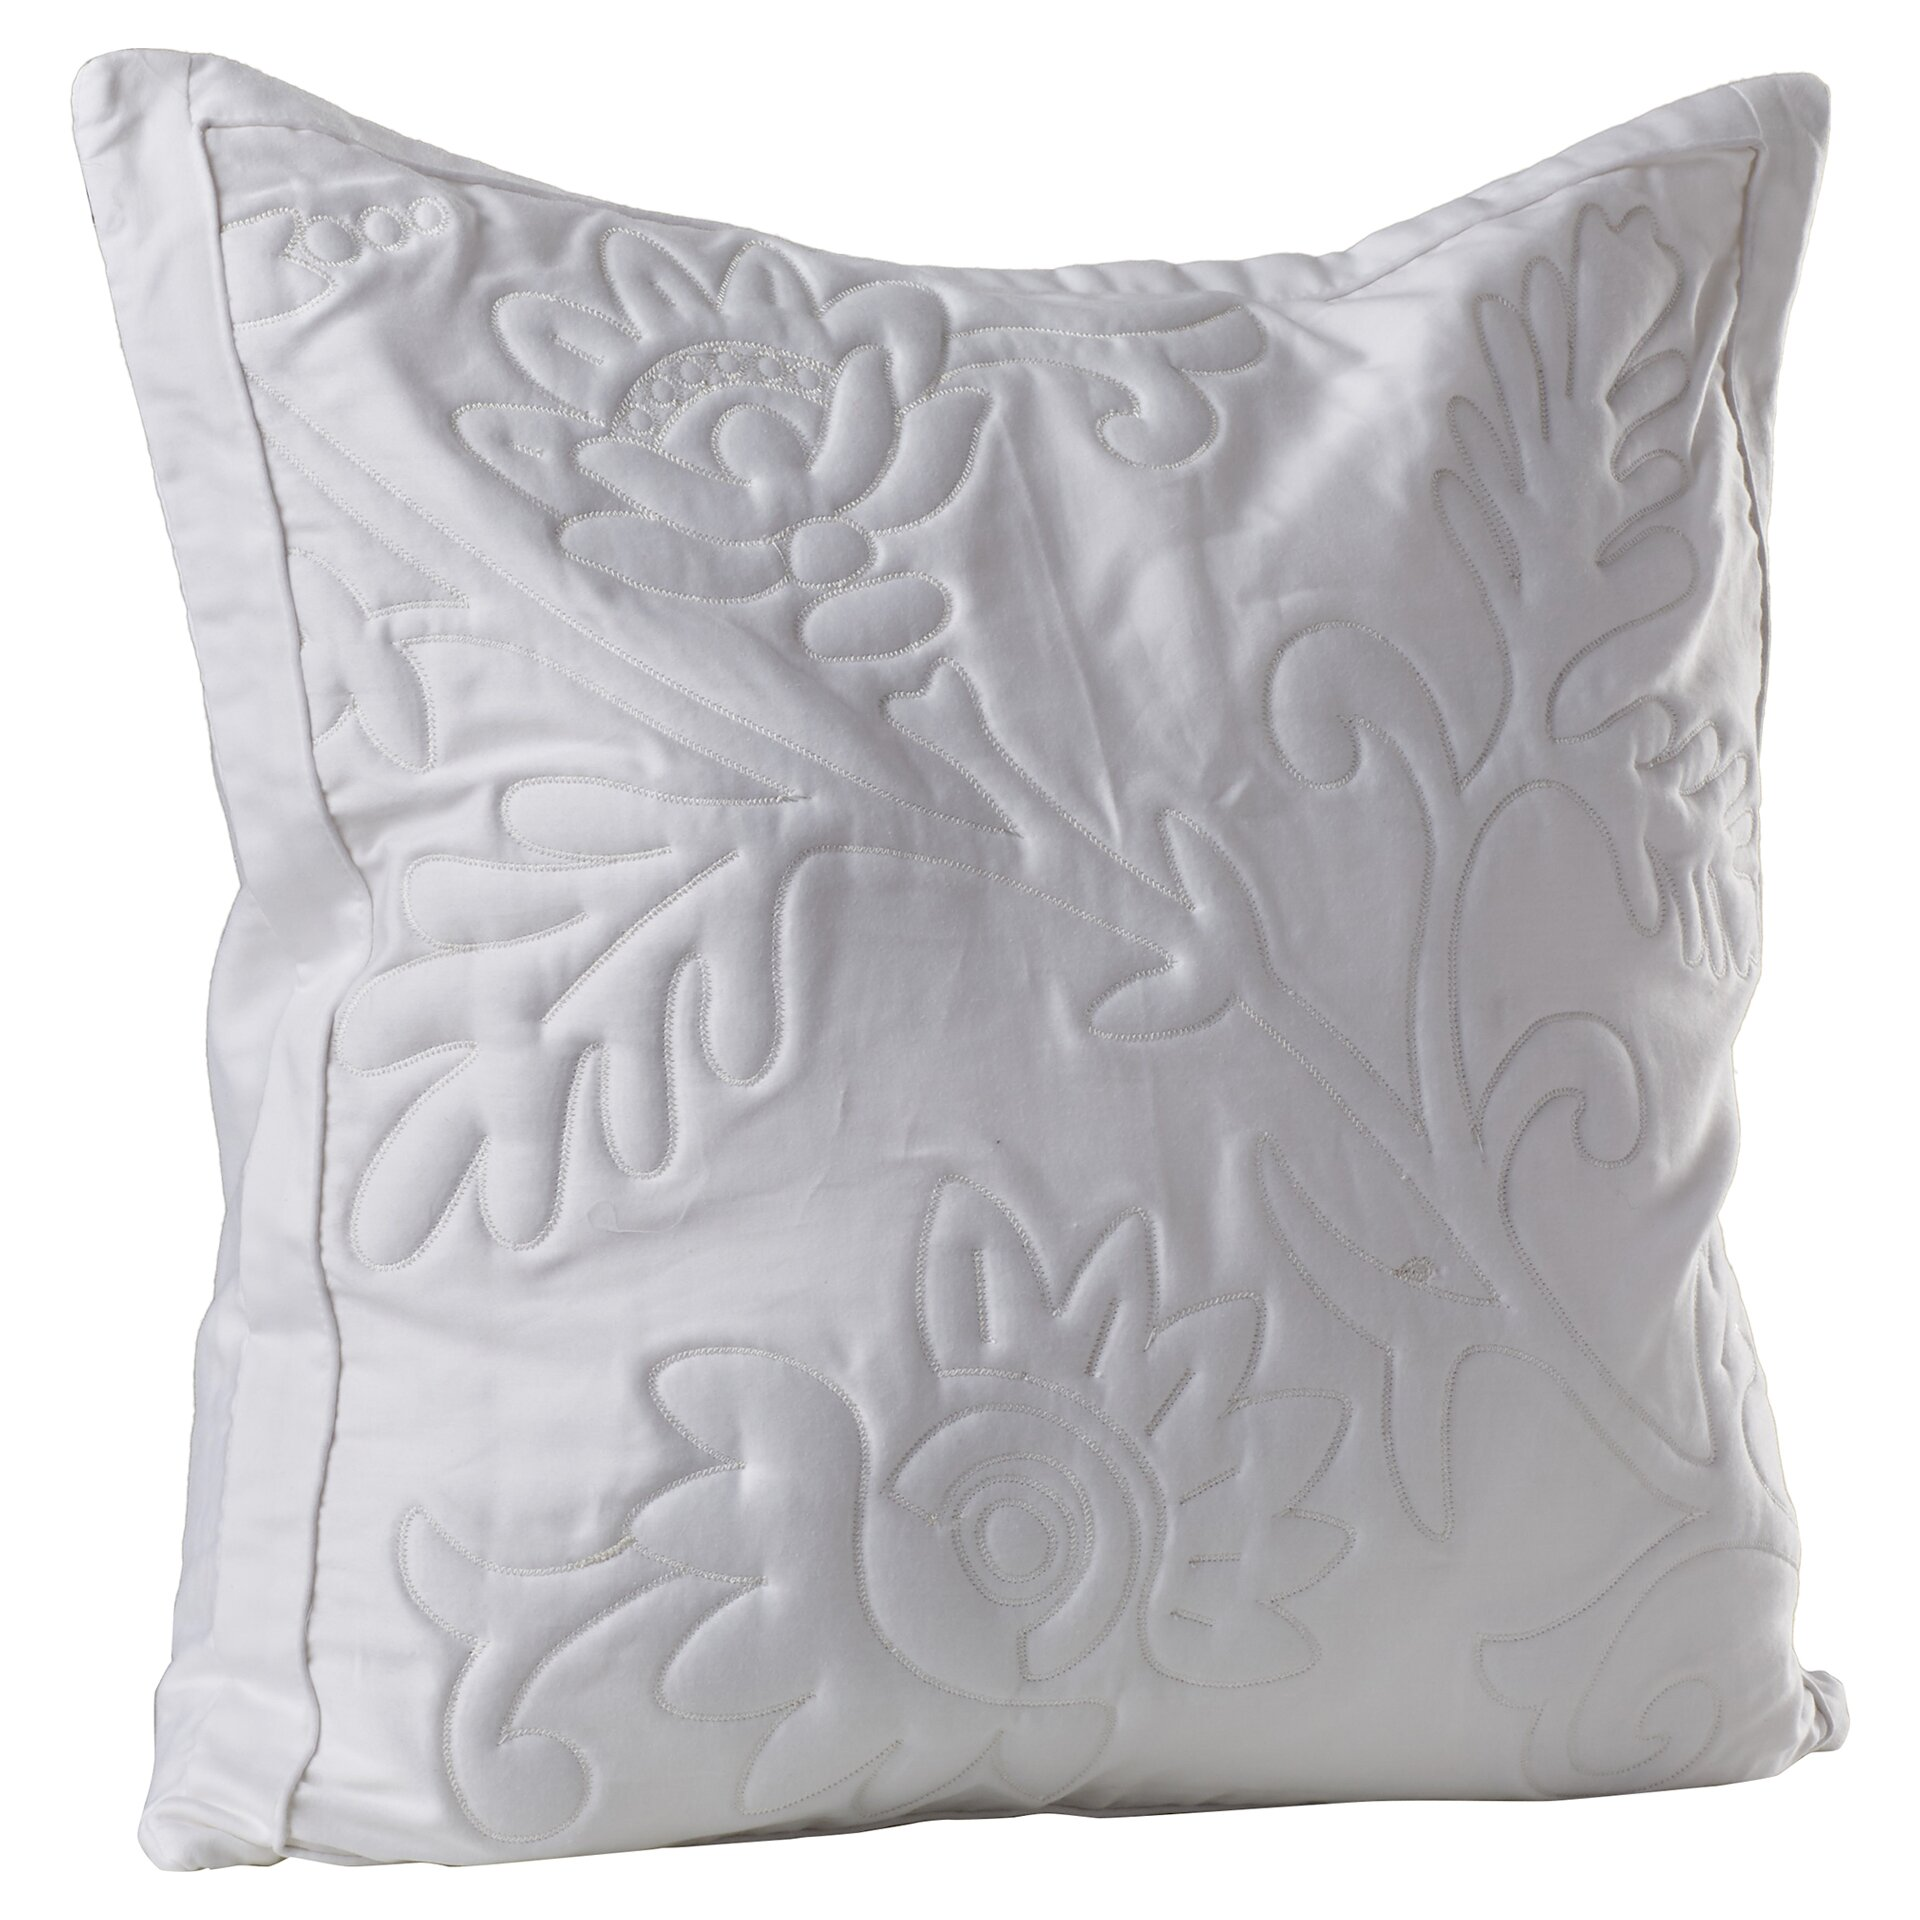 Quality Throw Pillows : One Allium Way Opal Quilted Throw Pillow & Reviews Wayfair